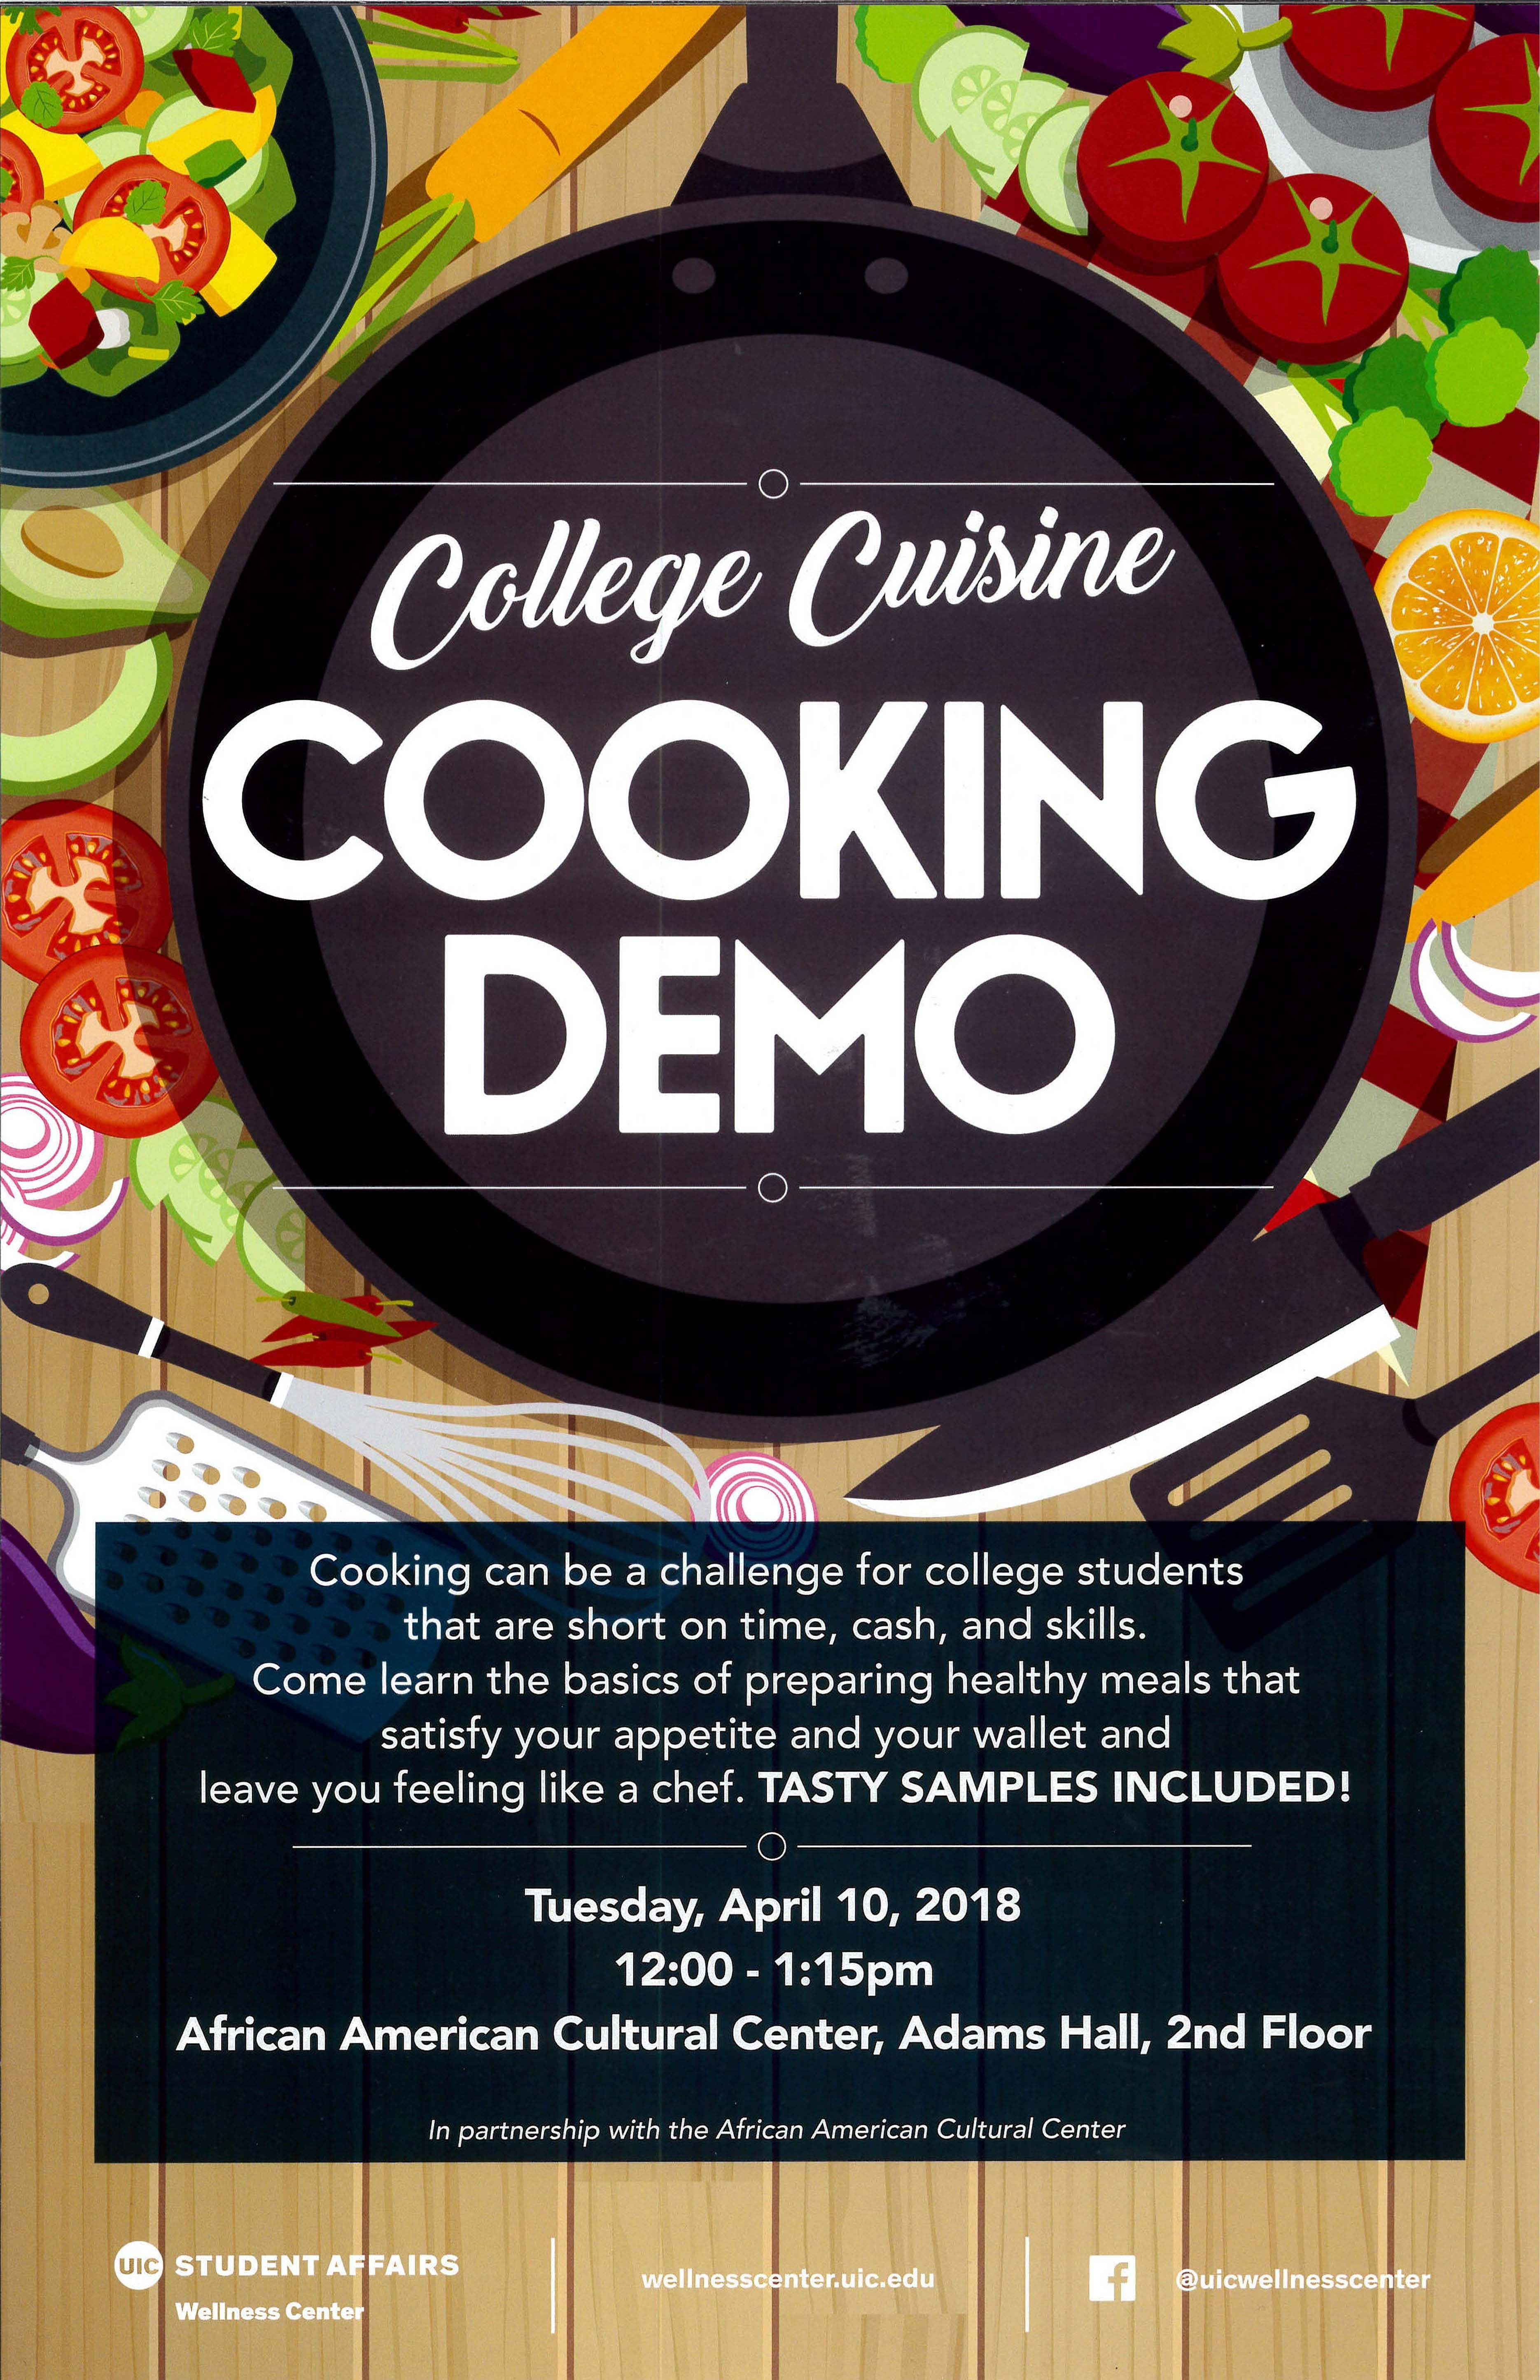 Poster Cuisine College Cooking Demo Poster African American Cultural Center